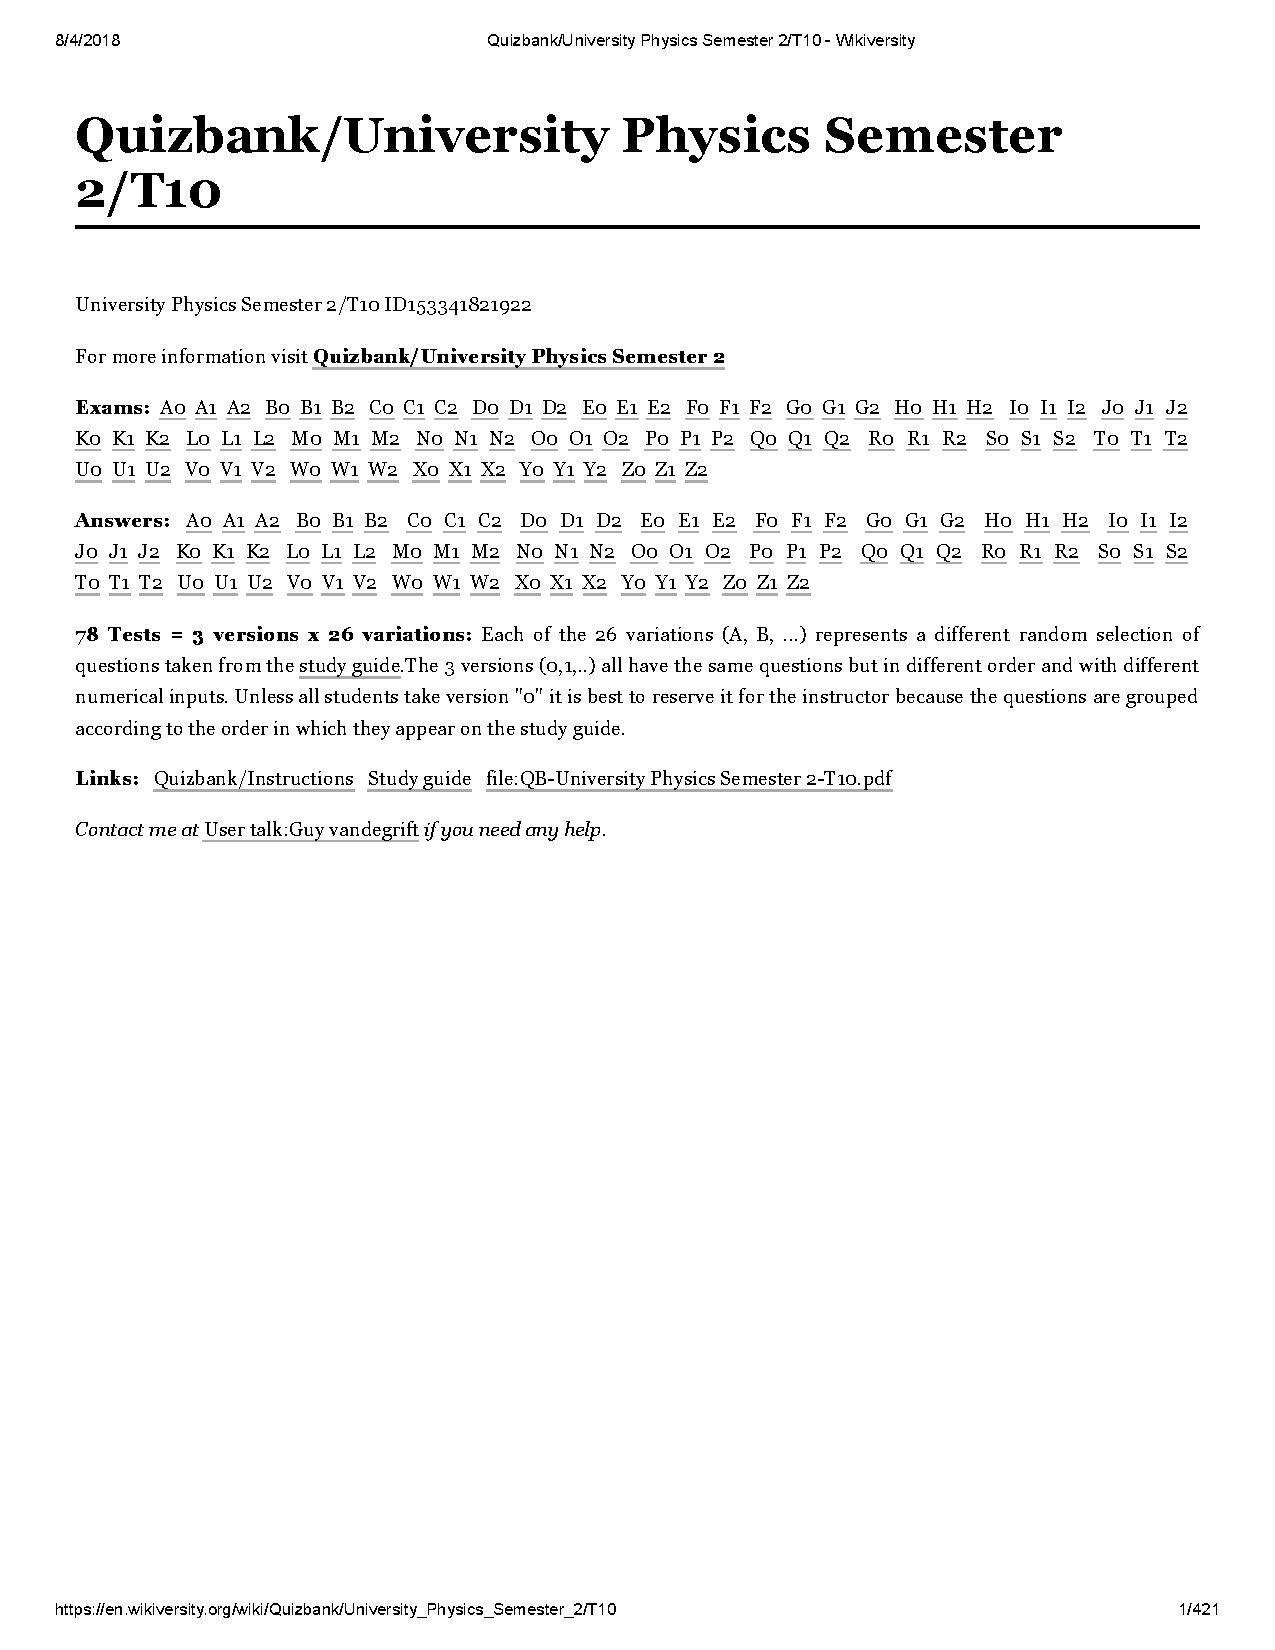 File:QB-University Physics Semester 2-T10.pdf